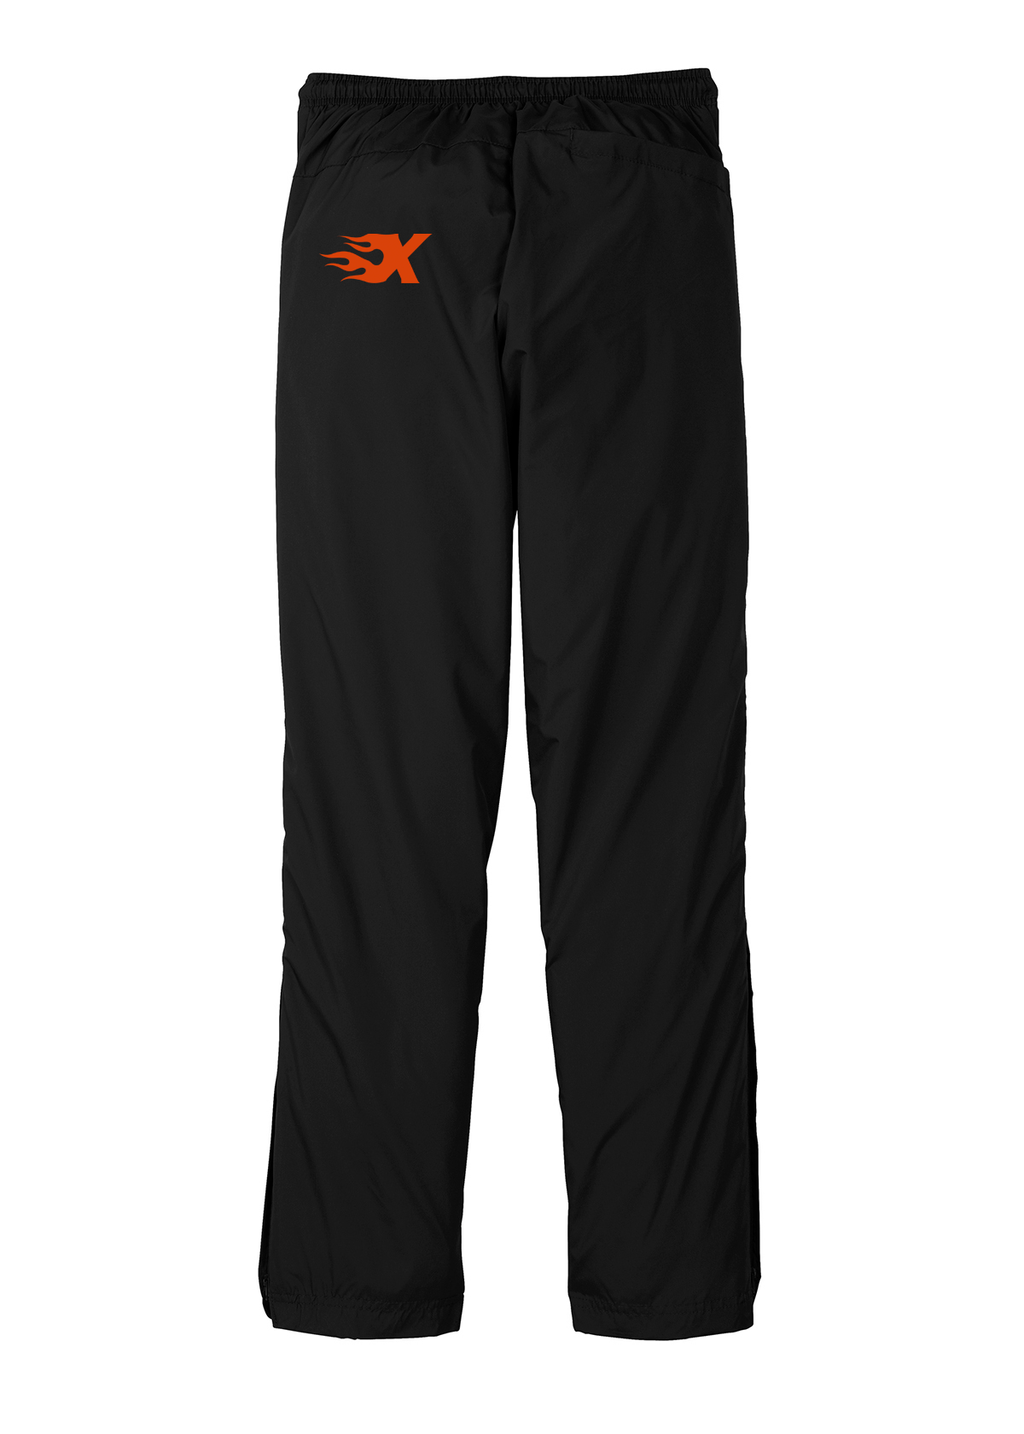 Xtreme Lacrosse Black Rain/Wind Pants